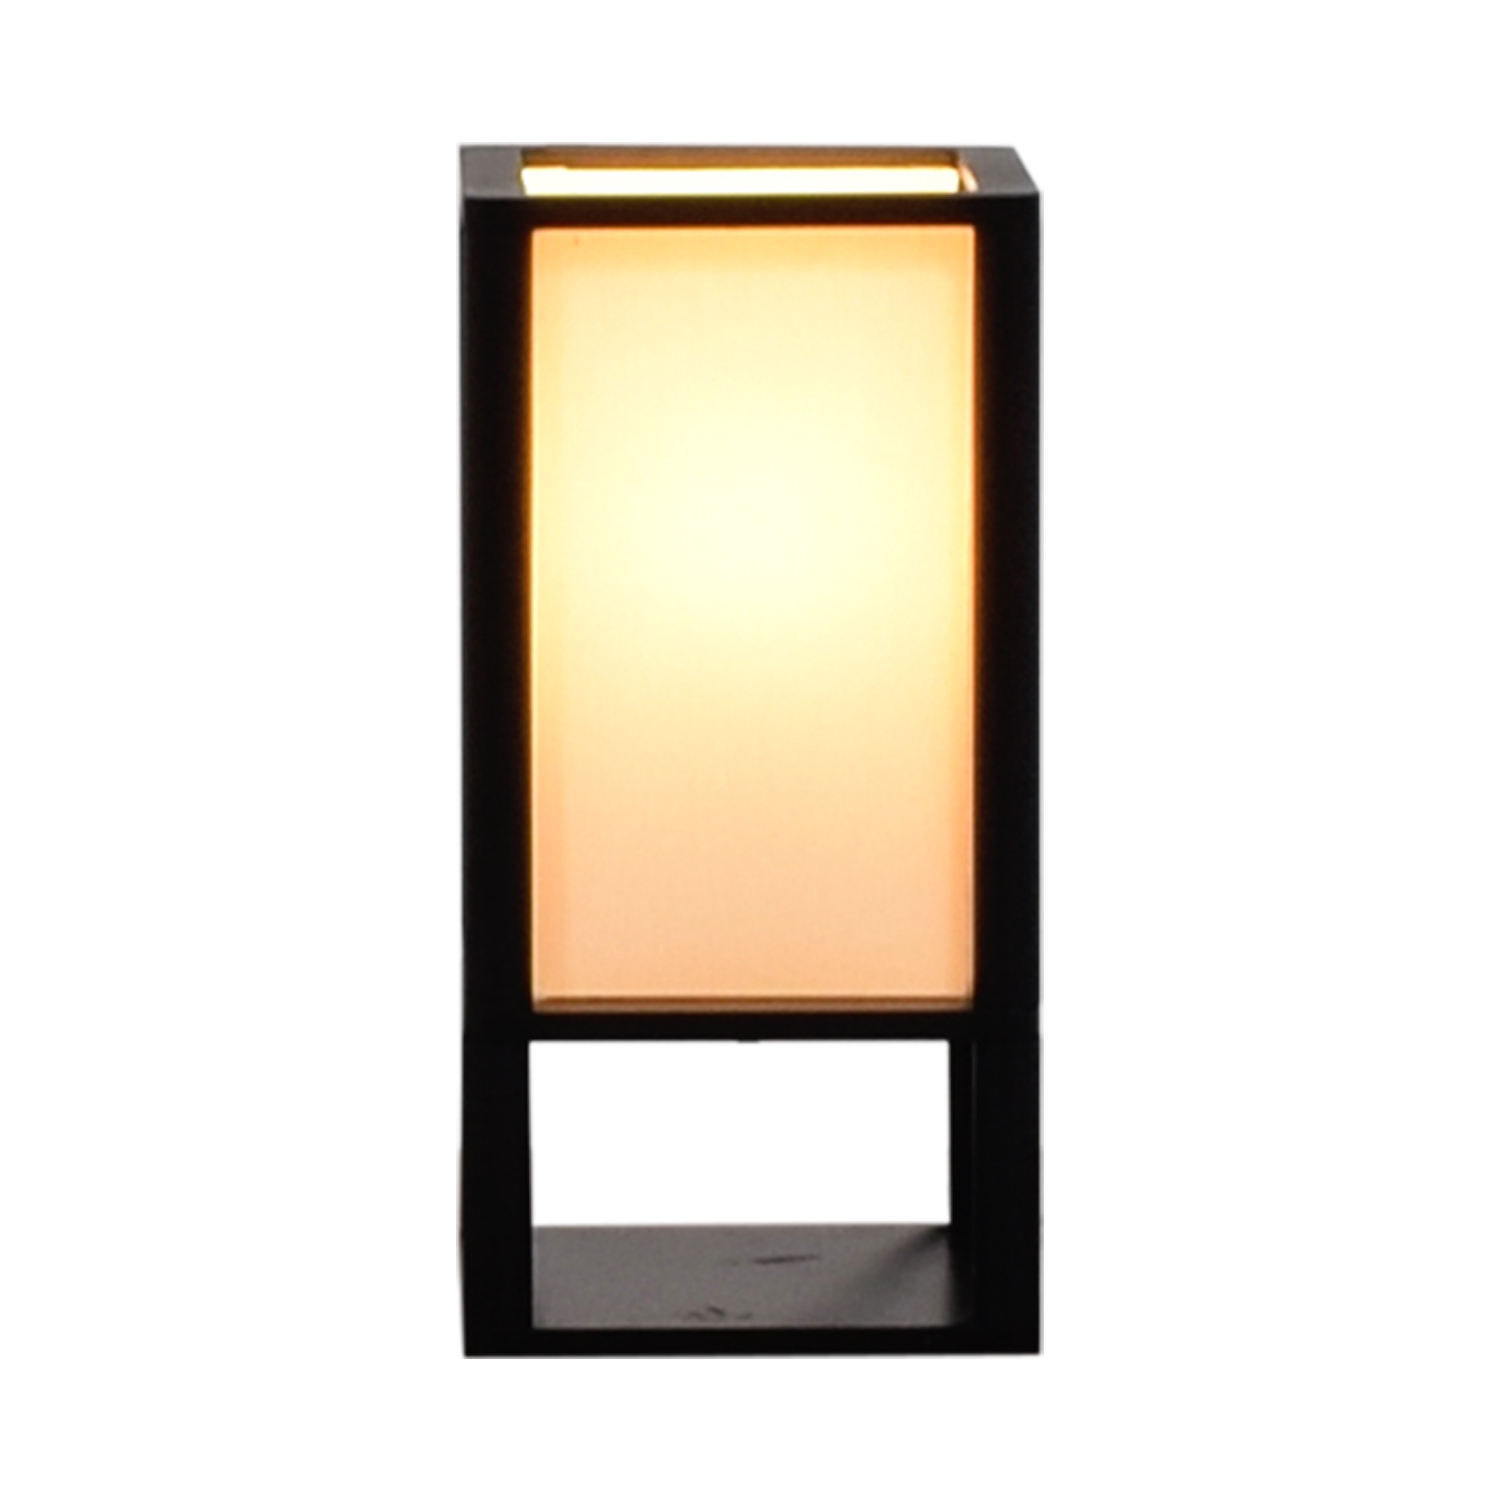 Threshold Threshold Black Table lamp Decor